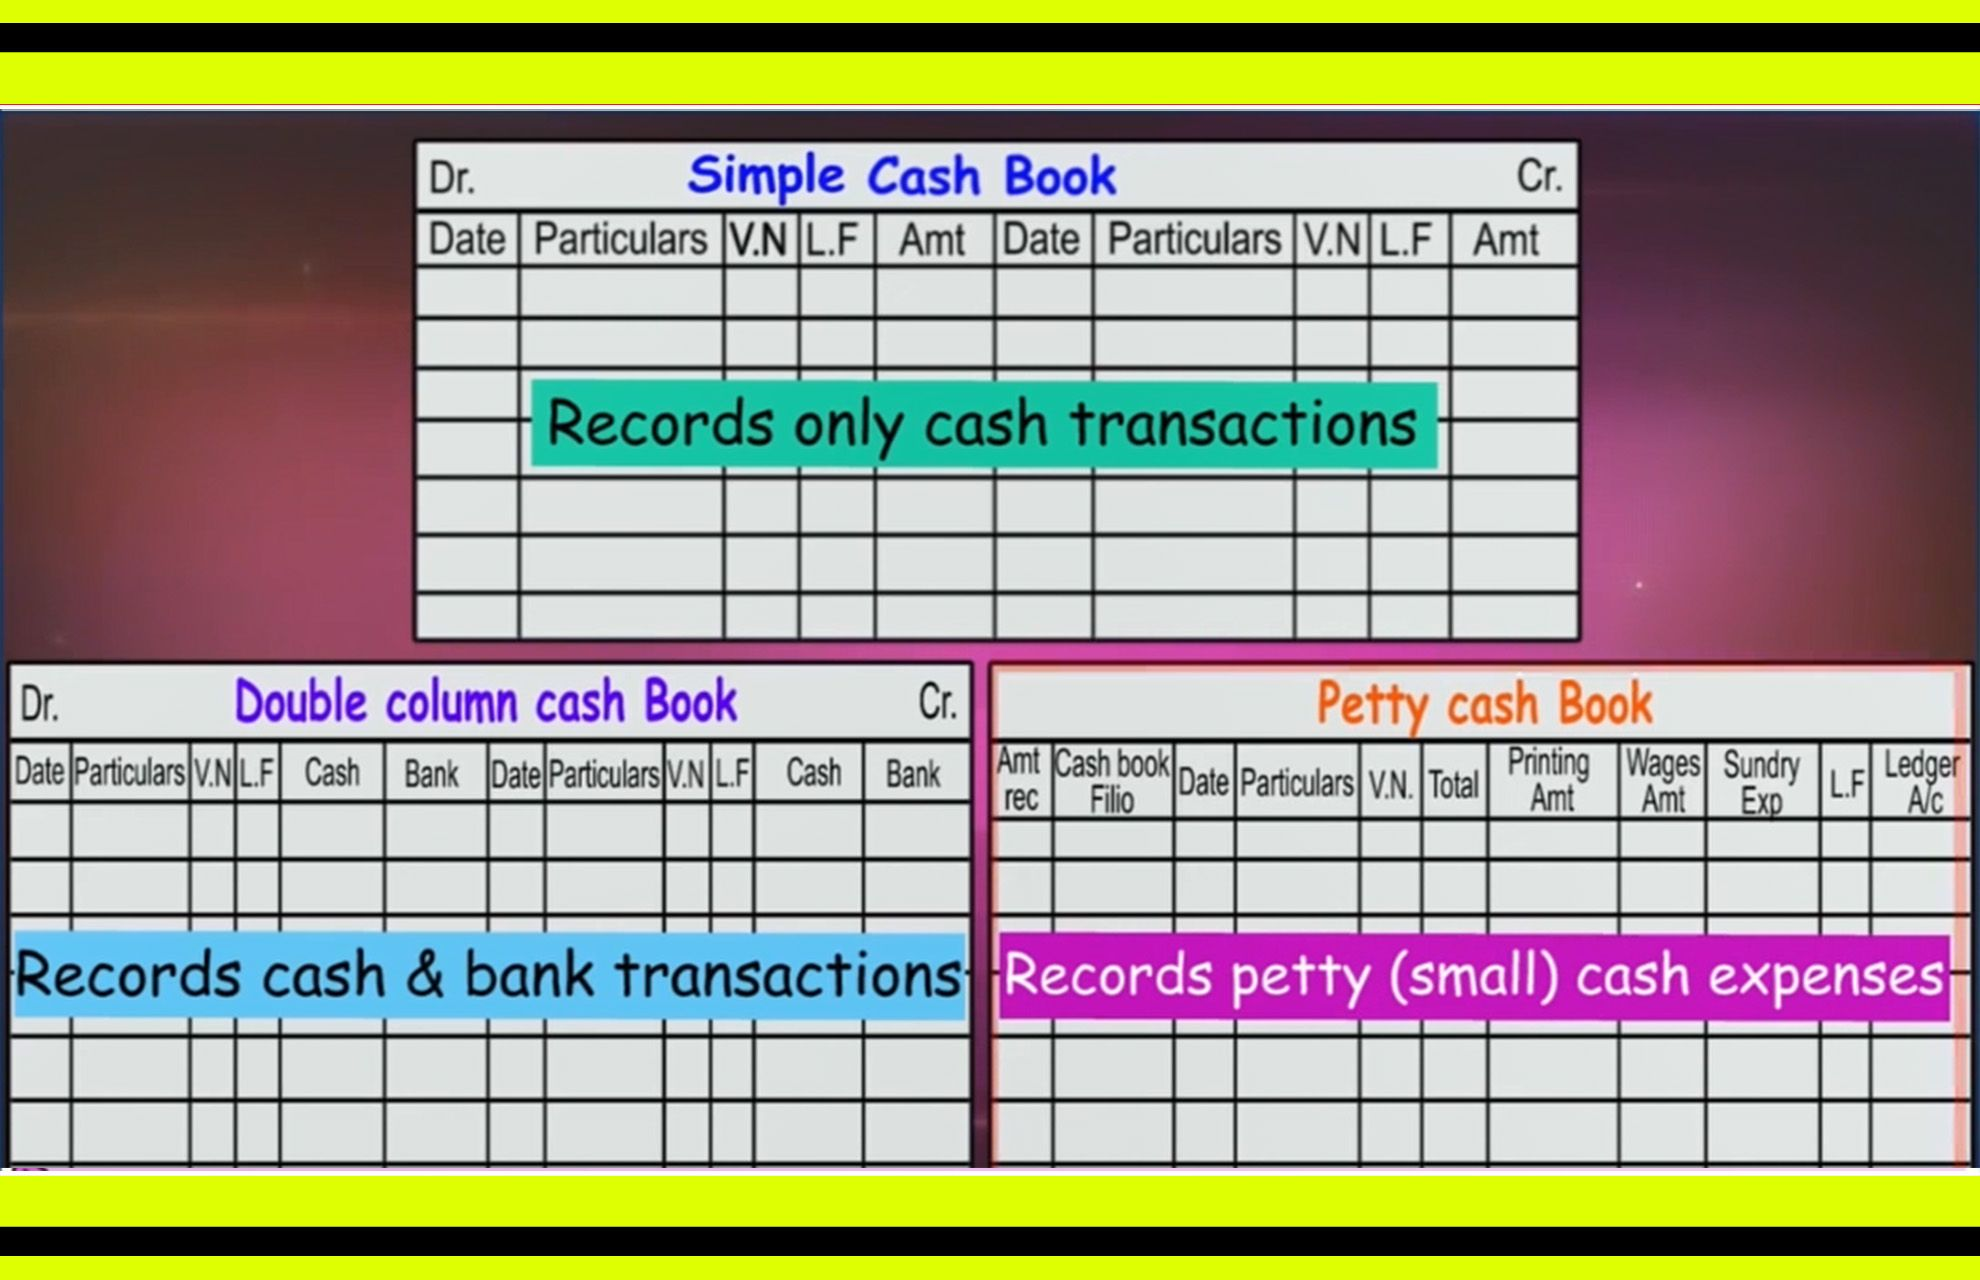 Simple Cash Book Petty Cash Book Double Column Cash Book